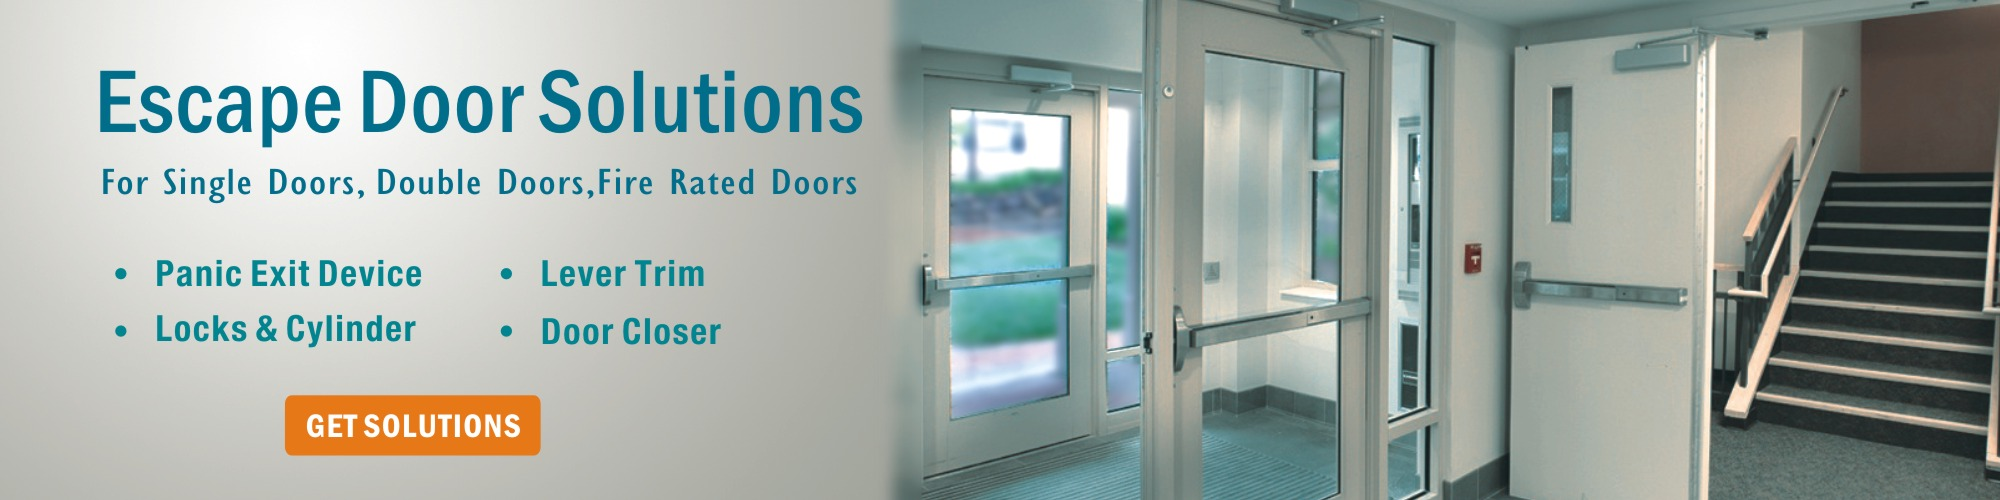 Escape Door solutions-D&D door hardware manufacturer